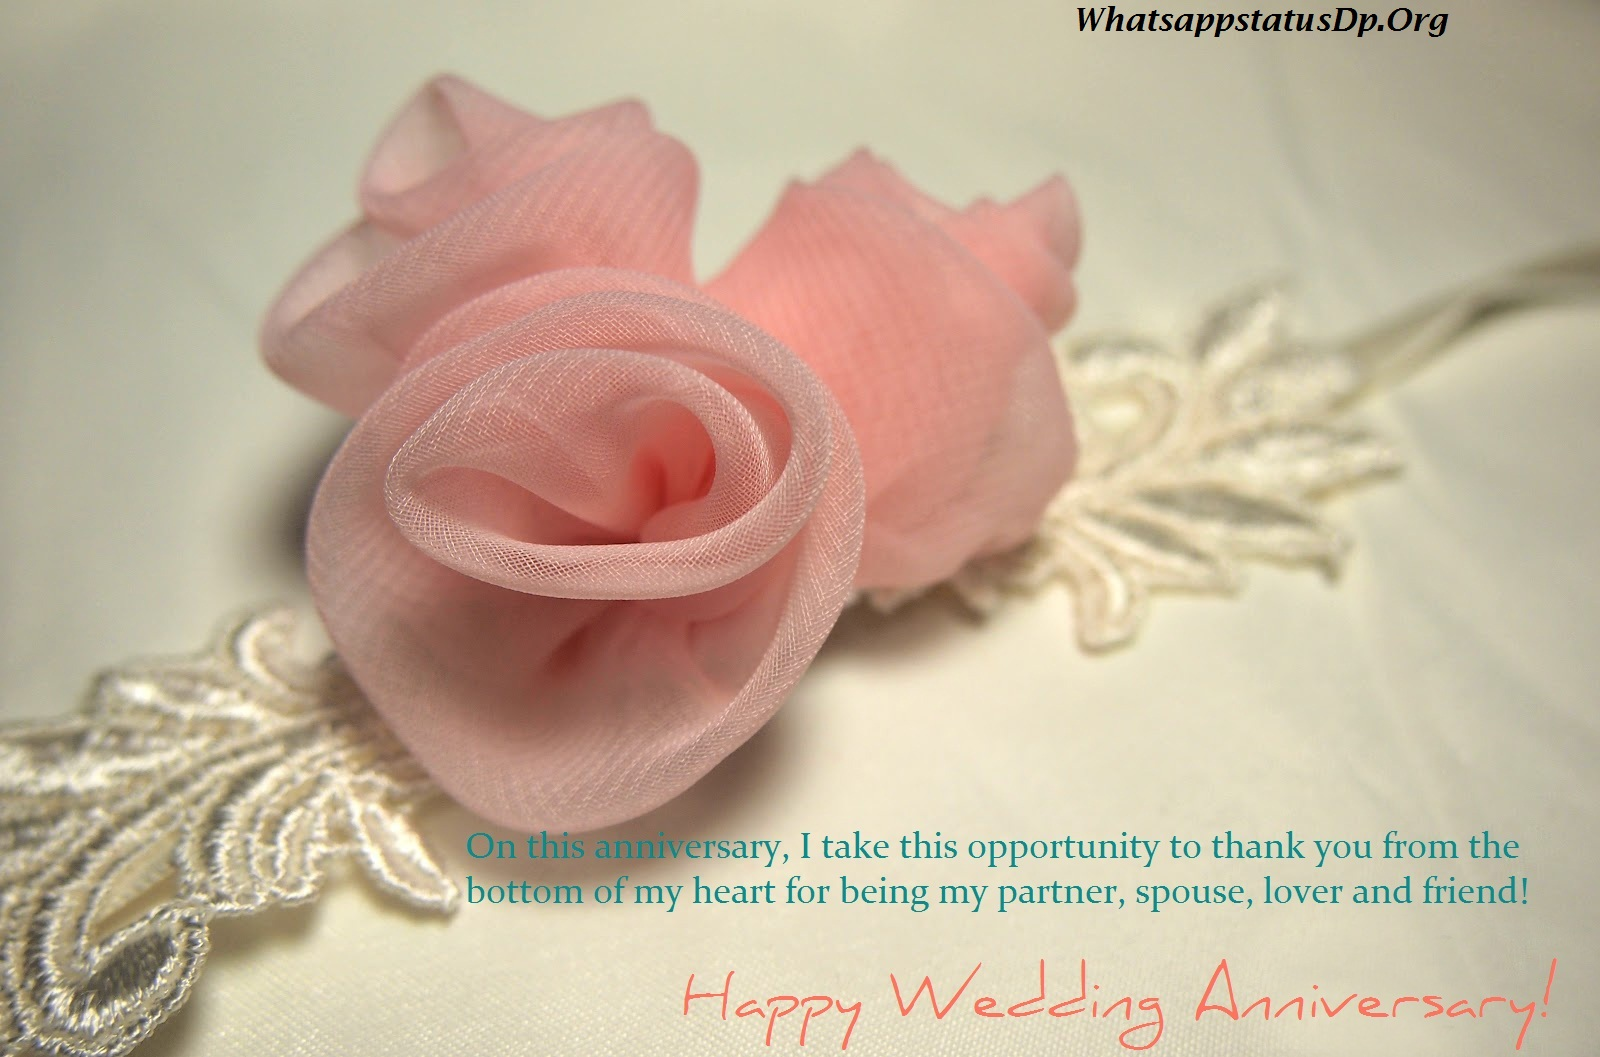 Wallpaper download marriage anniversary - Indian Wedding Images Free